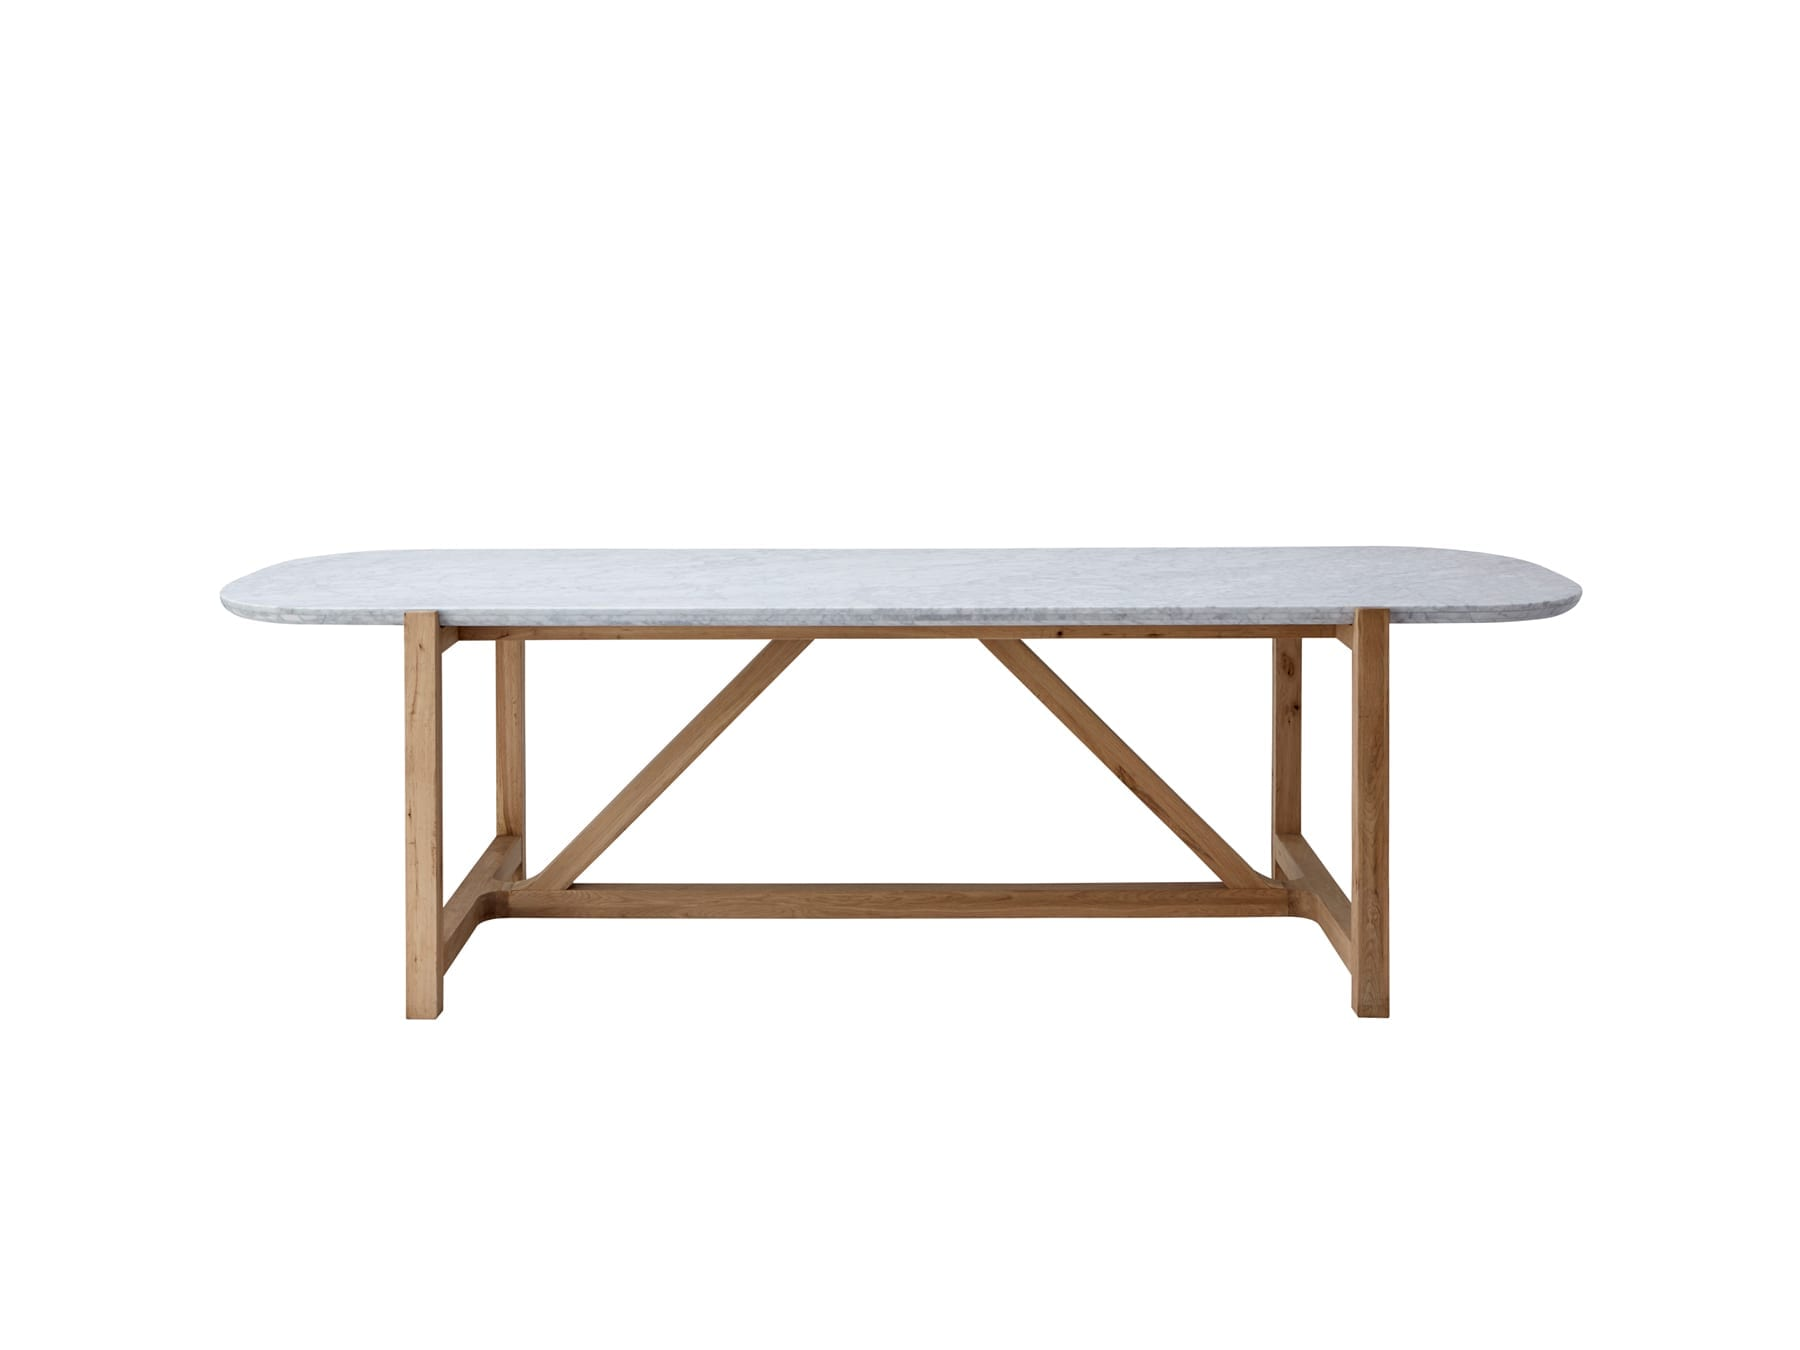 Halo Stoneleaf Dining Table available at McKenzie & Willis